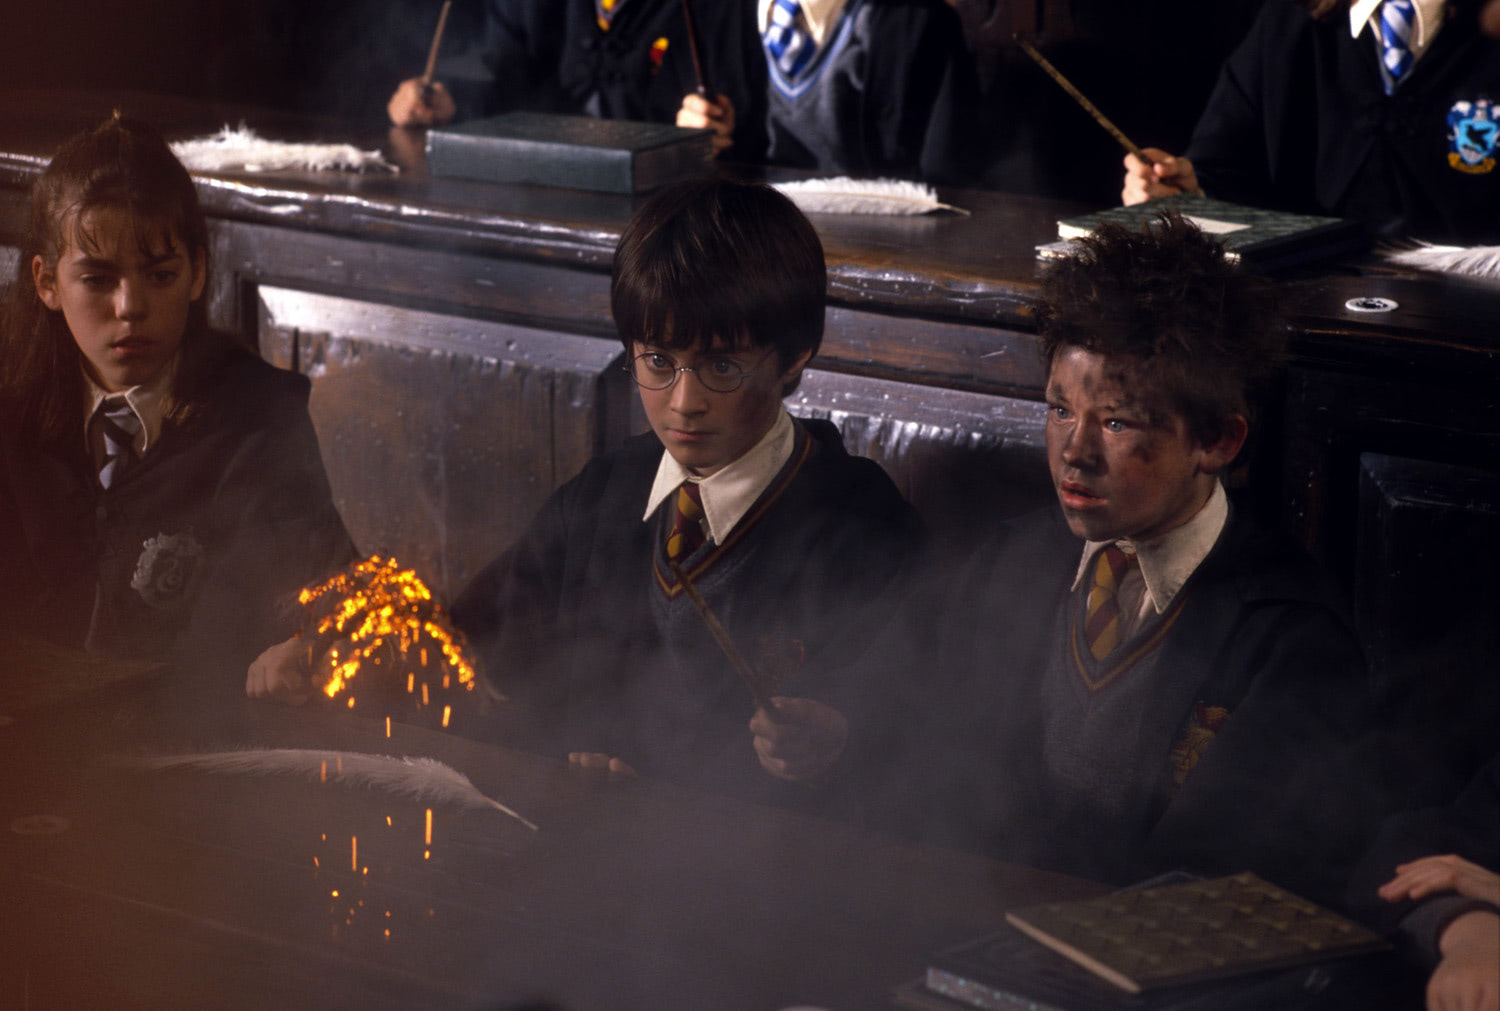 Seamus Finnigan blows up a feather